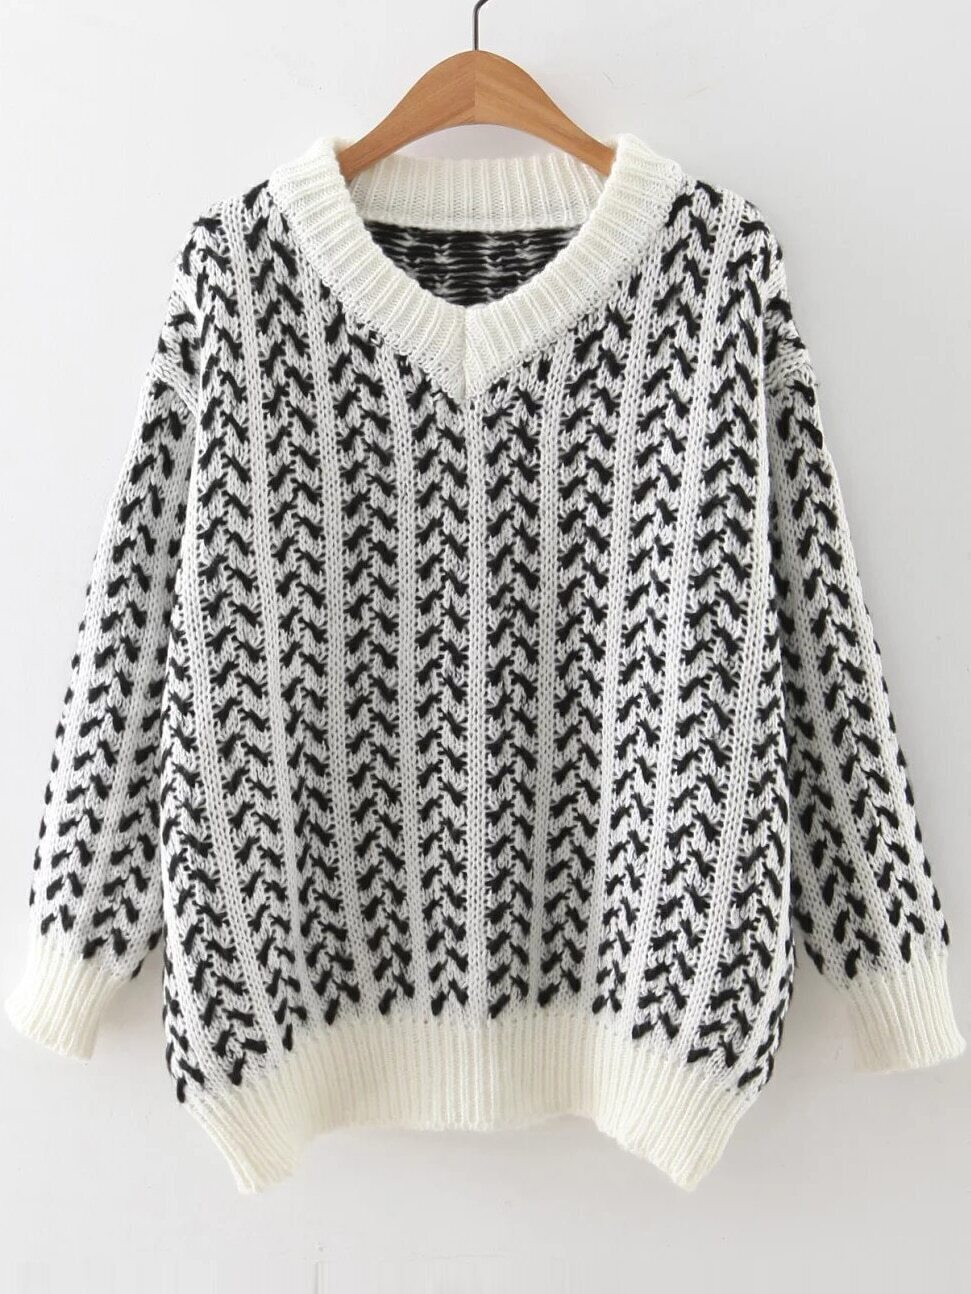 White V Neck Ribbed Trim Loose Sweater sweater160901215